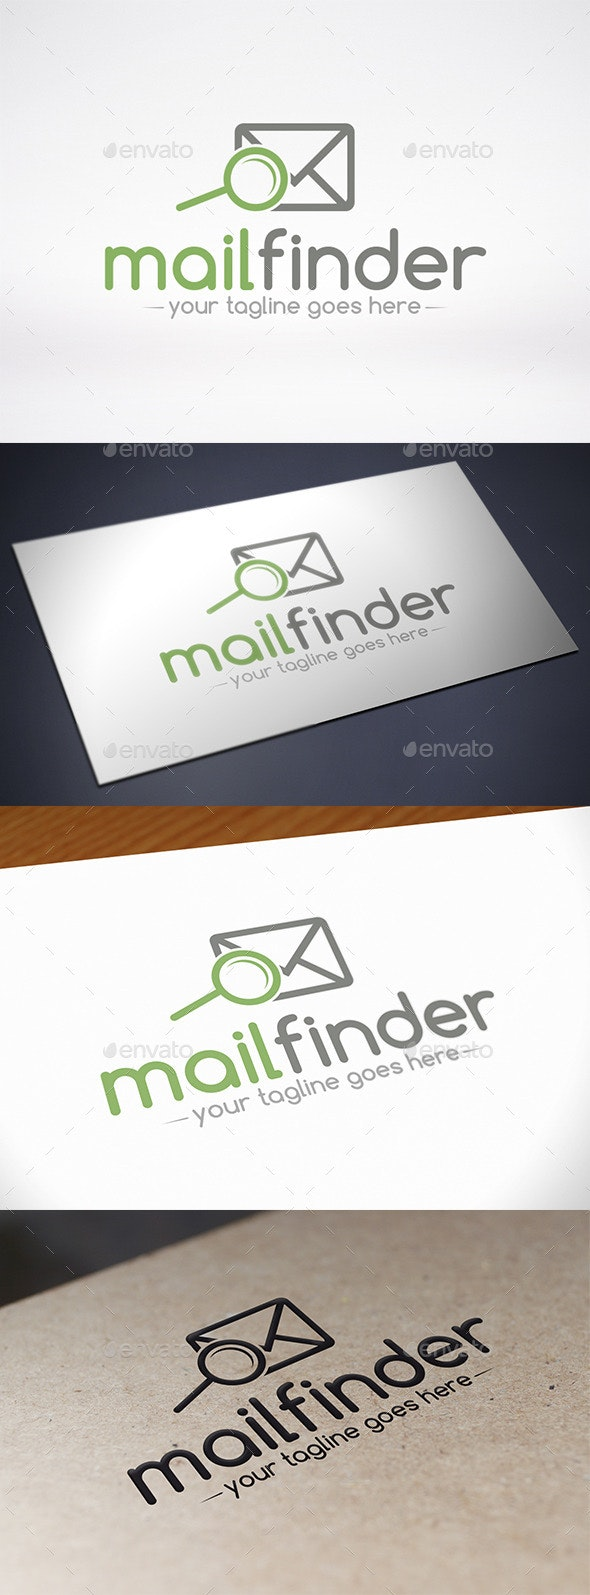 Mail Finder Logo Template - Objects Logo Templates